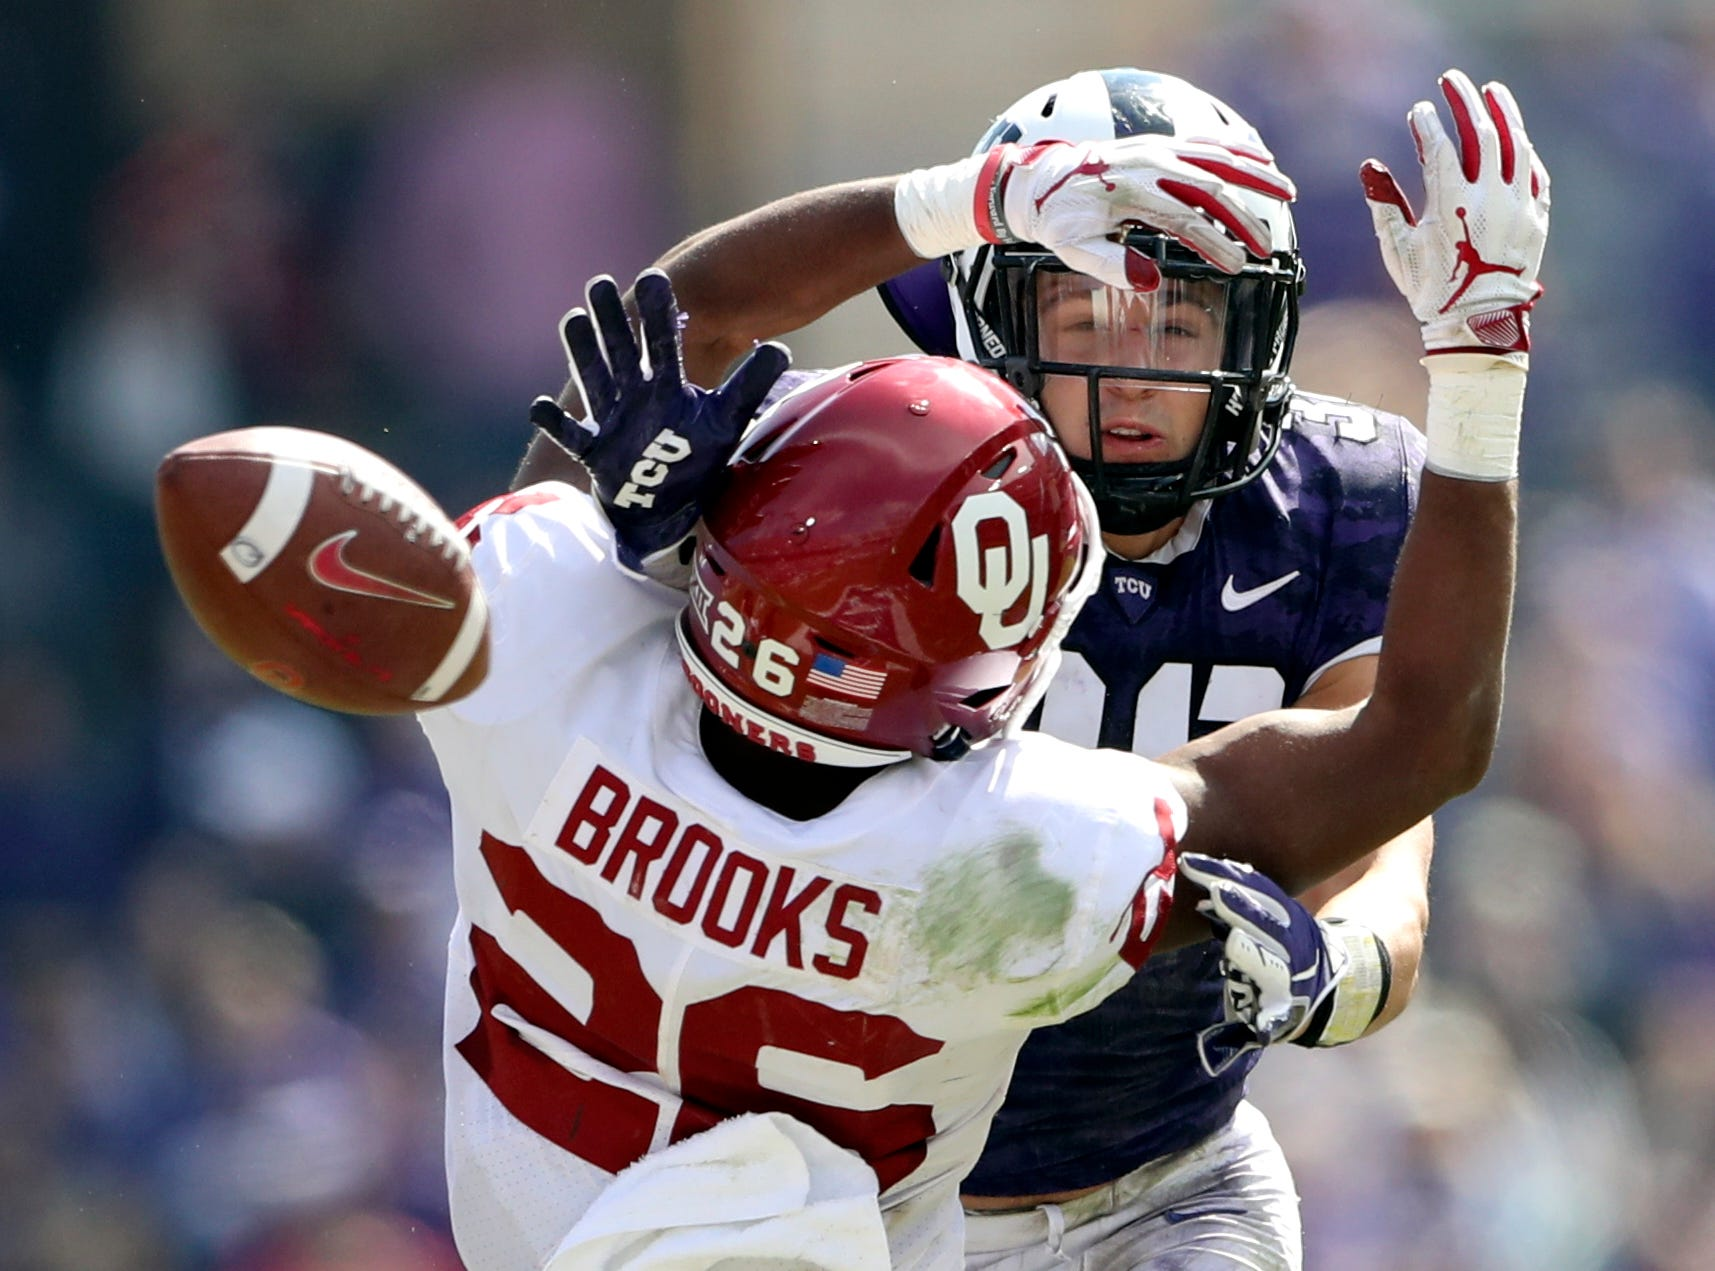 TCU Horned Frogs linebacker Garret Wallow (30) defends a pass intended for Oklahoma Sooners running back Kennedy Brooks (26) during the second half at Amon G. Carter Stadium.